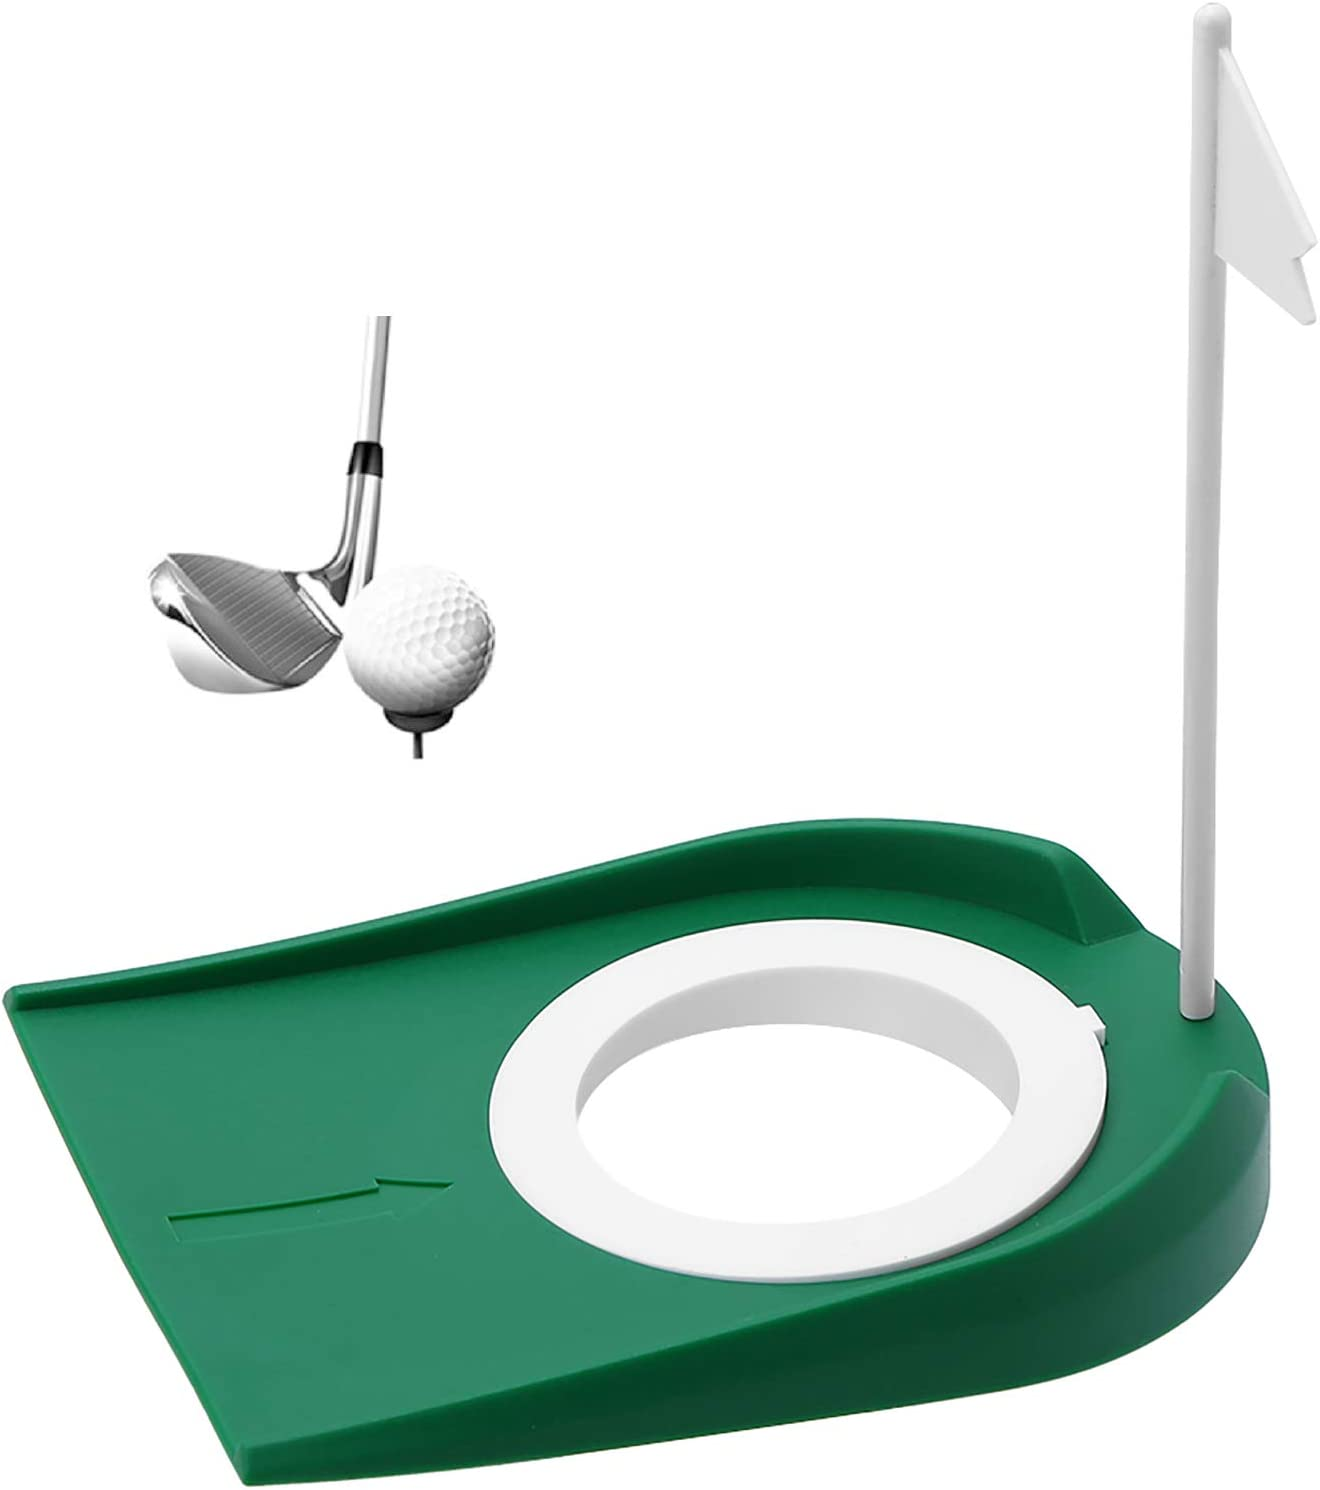 Tianhaik Golf Practice Putting Cup Mat with Hole and Flag Plastic for Indoor Outdoor Office Yard